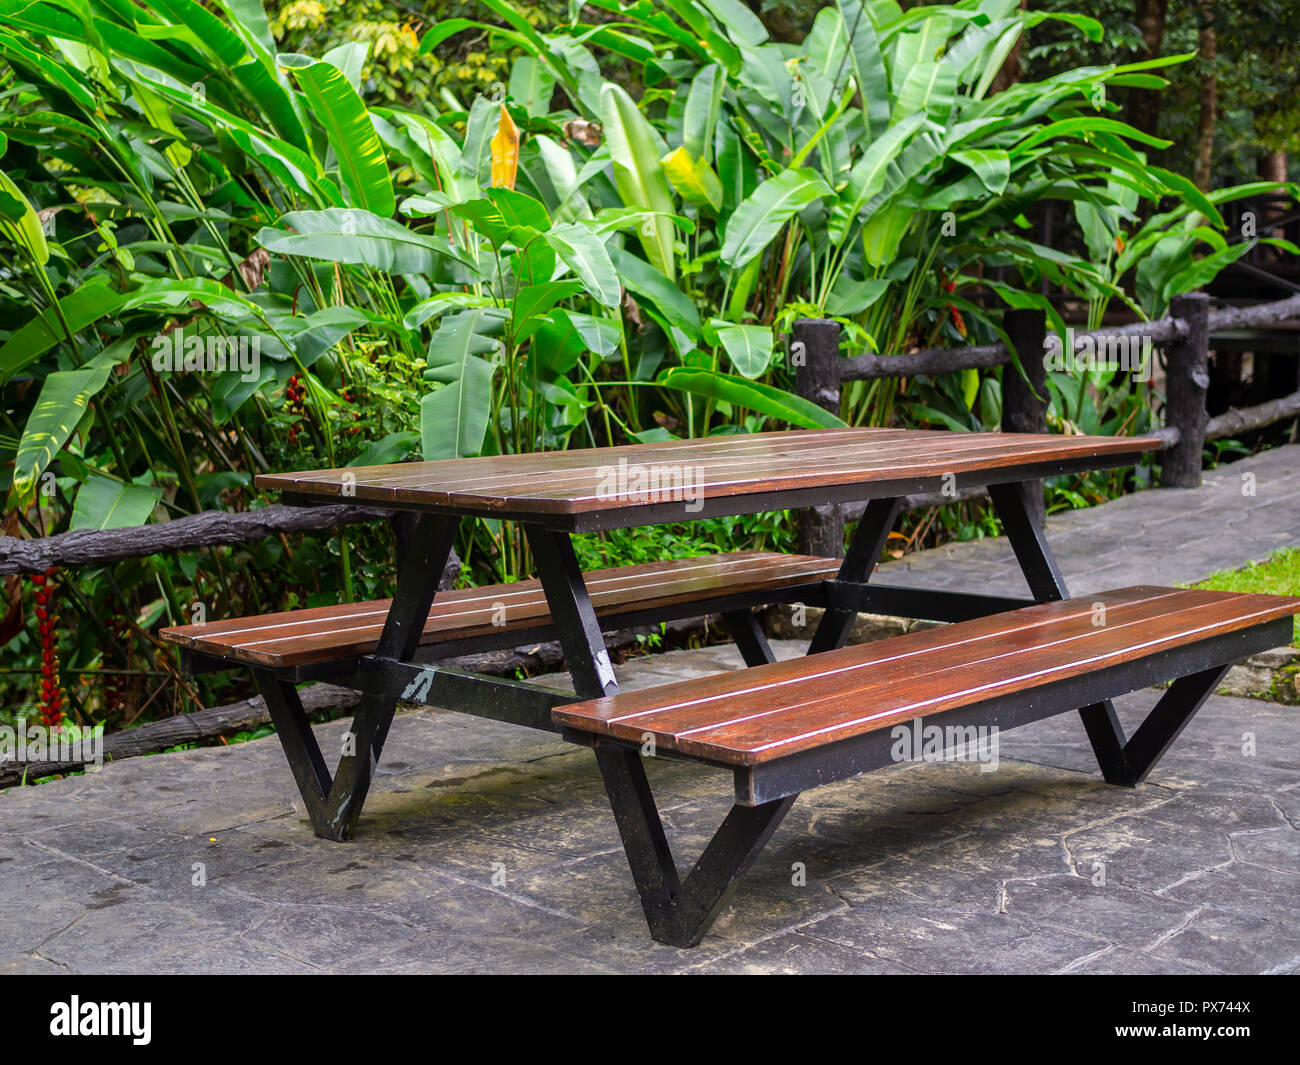 reclaimed wood outdoor dining table patio wooden patio chair reclaimed wood outdoor dining table on tropical rainforest background